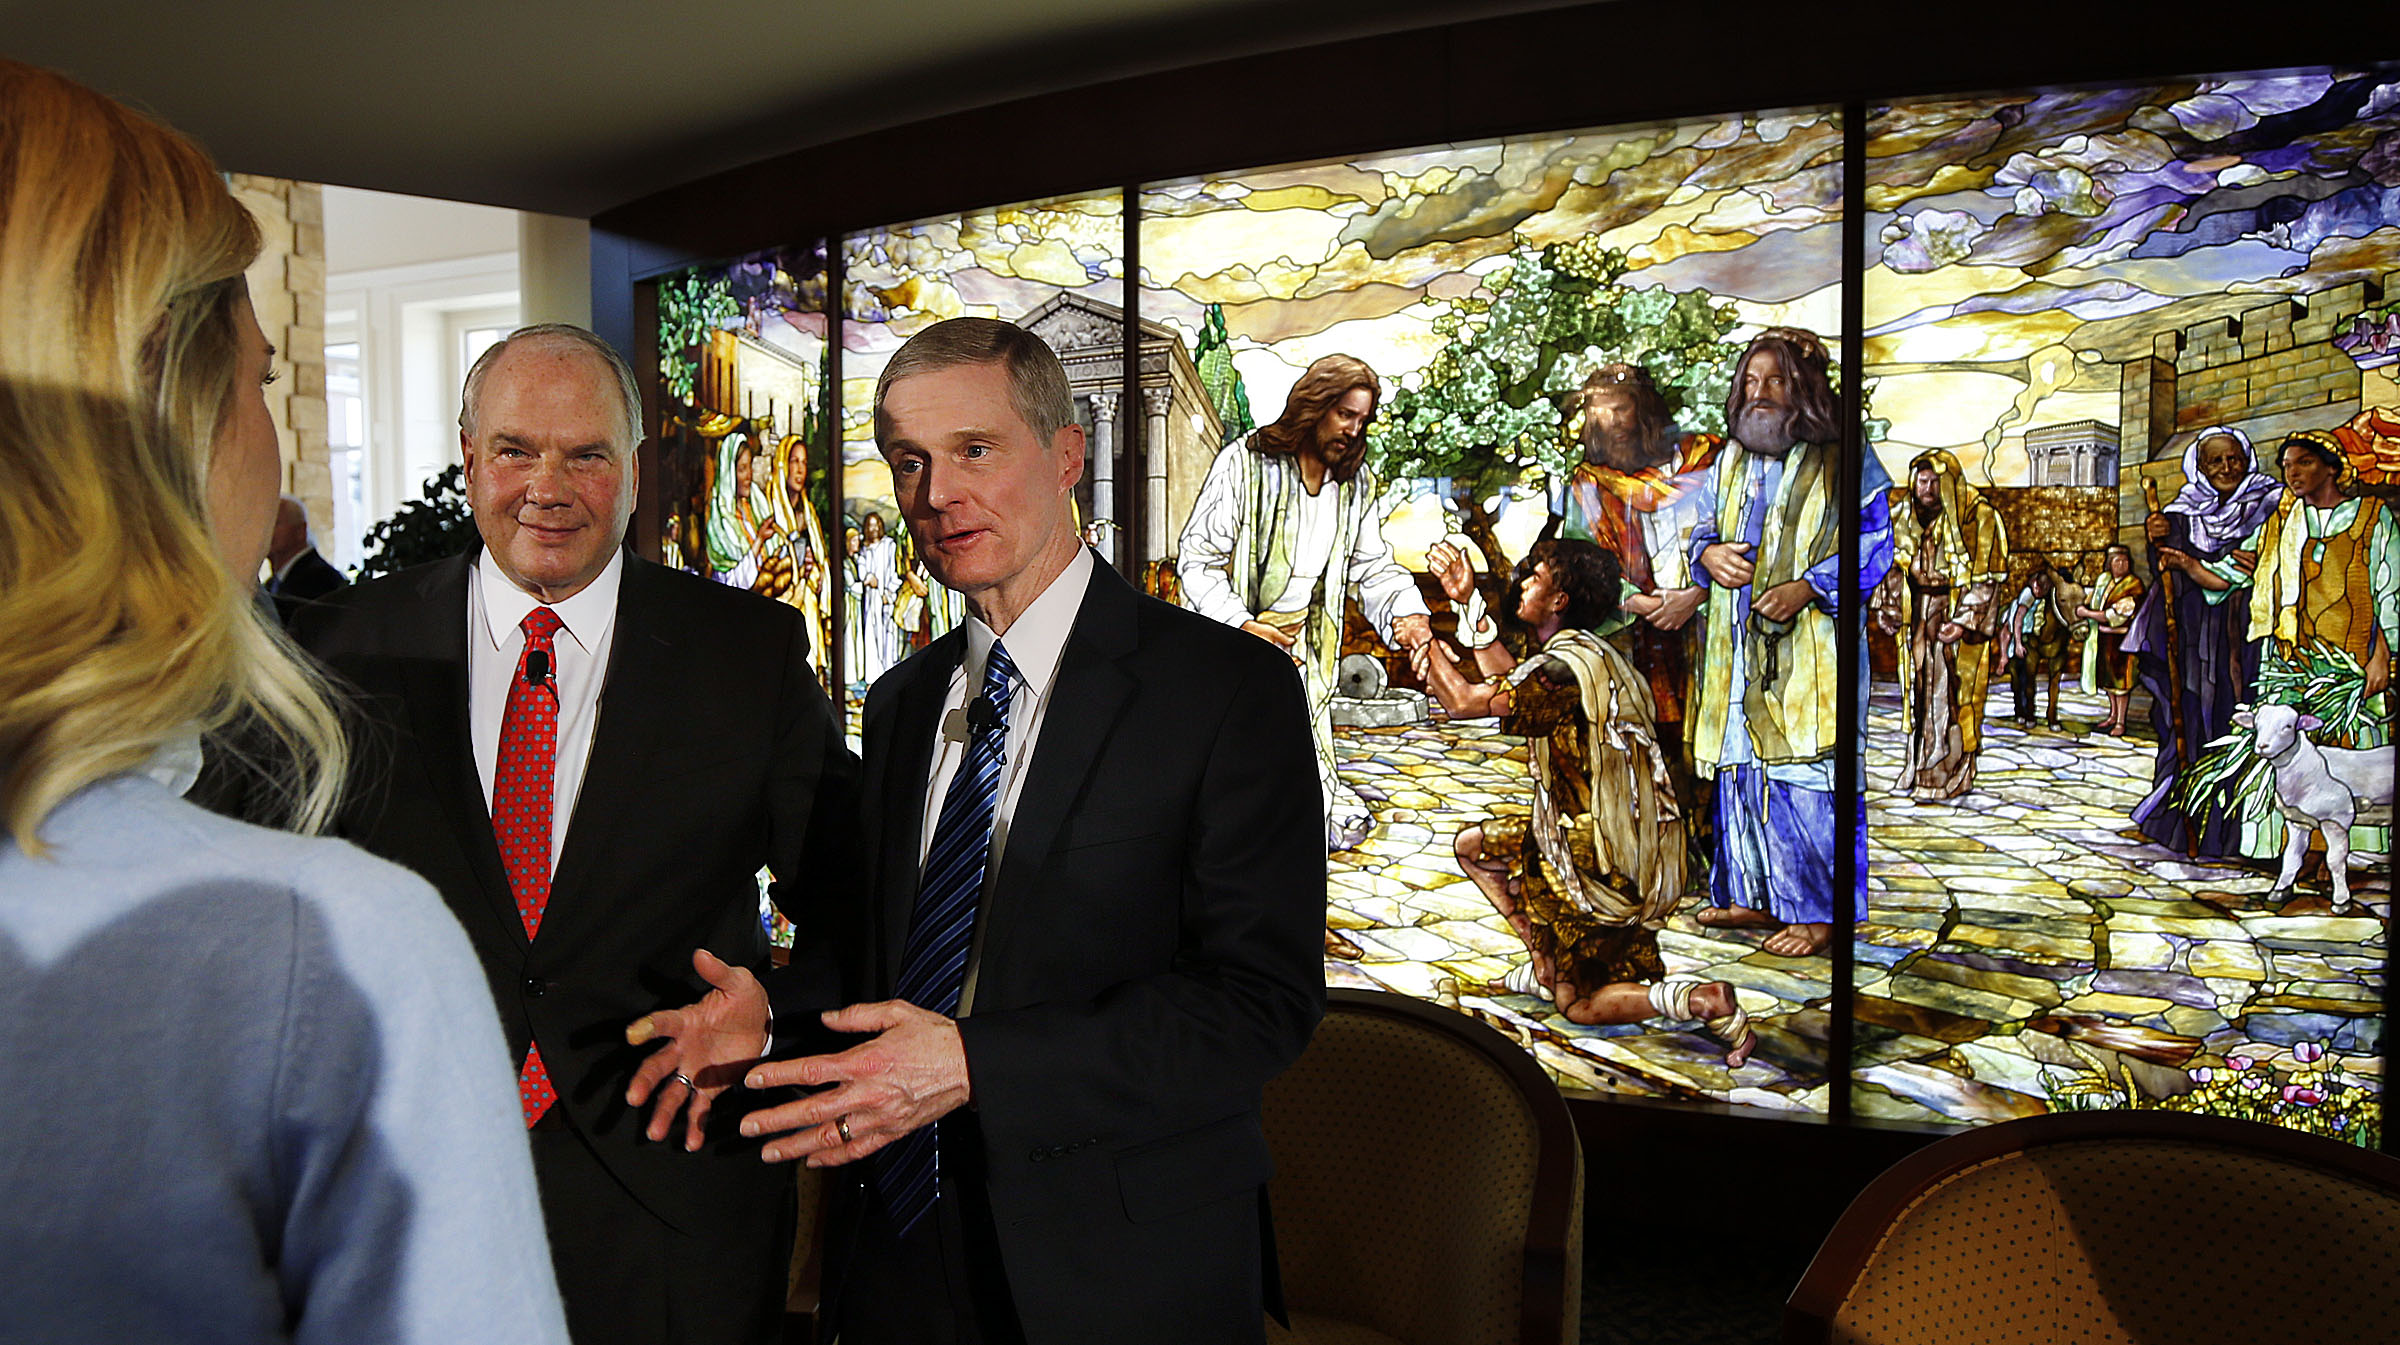 Elder Ronald A. Rasband, left, and Elder David A. Bednar of the Quorum of the Twelve Apostles talk with CNN correspondent Delia Gallagher following a press conference in the Rome Temple Visitors' Center of The Church of Jesus Christ of Latter-day Saints on Monday, Jan. 14, 2019.